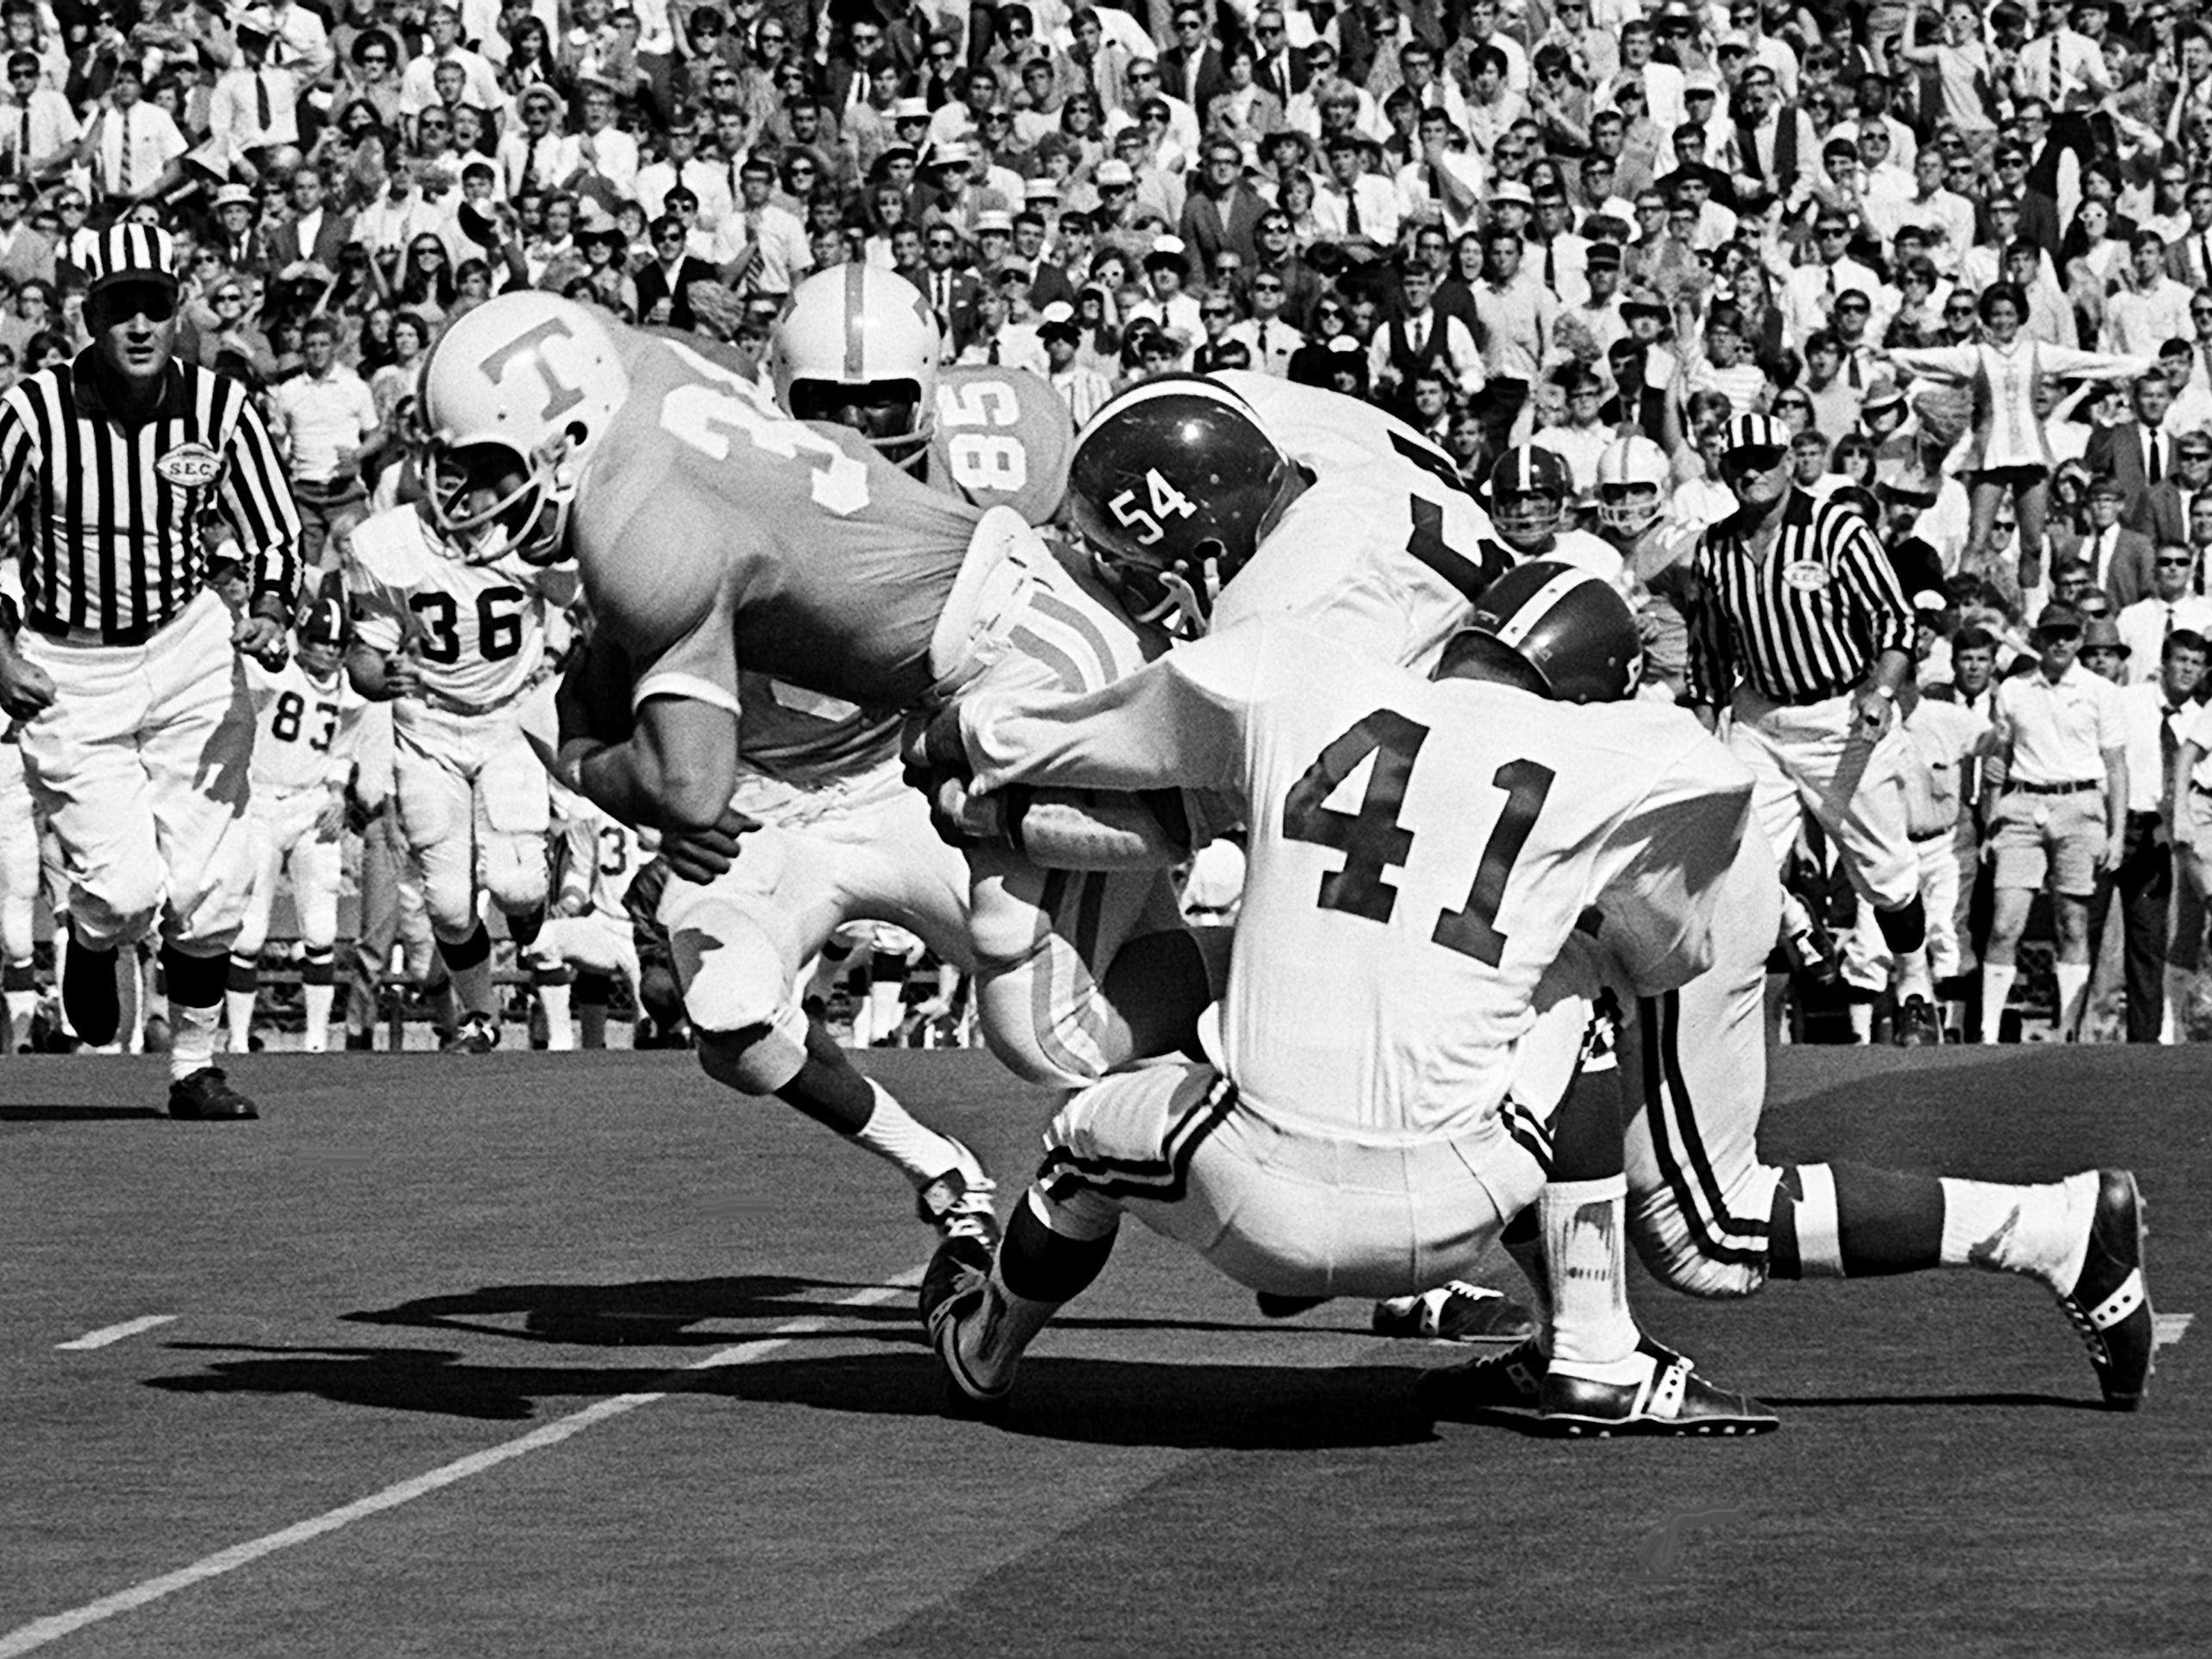 Tennessee senior fullback Richard Pickens (34) gets grabbed from behind by Alabama linebacker Mike Hall (54) and another defender at Neyland Stadium Oct. 19, 1968.